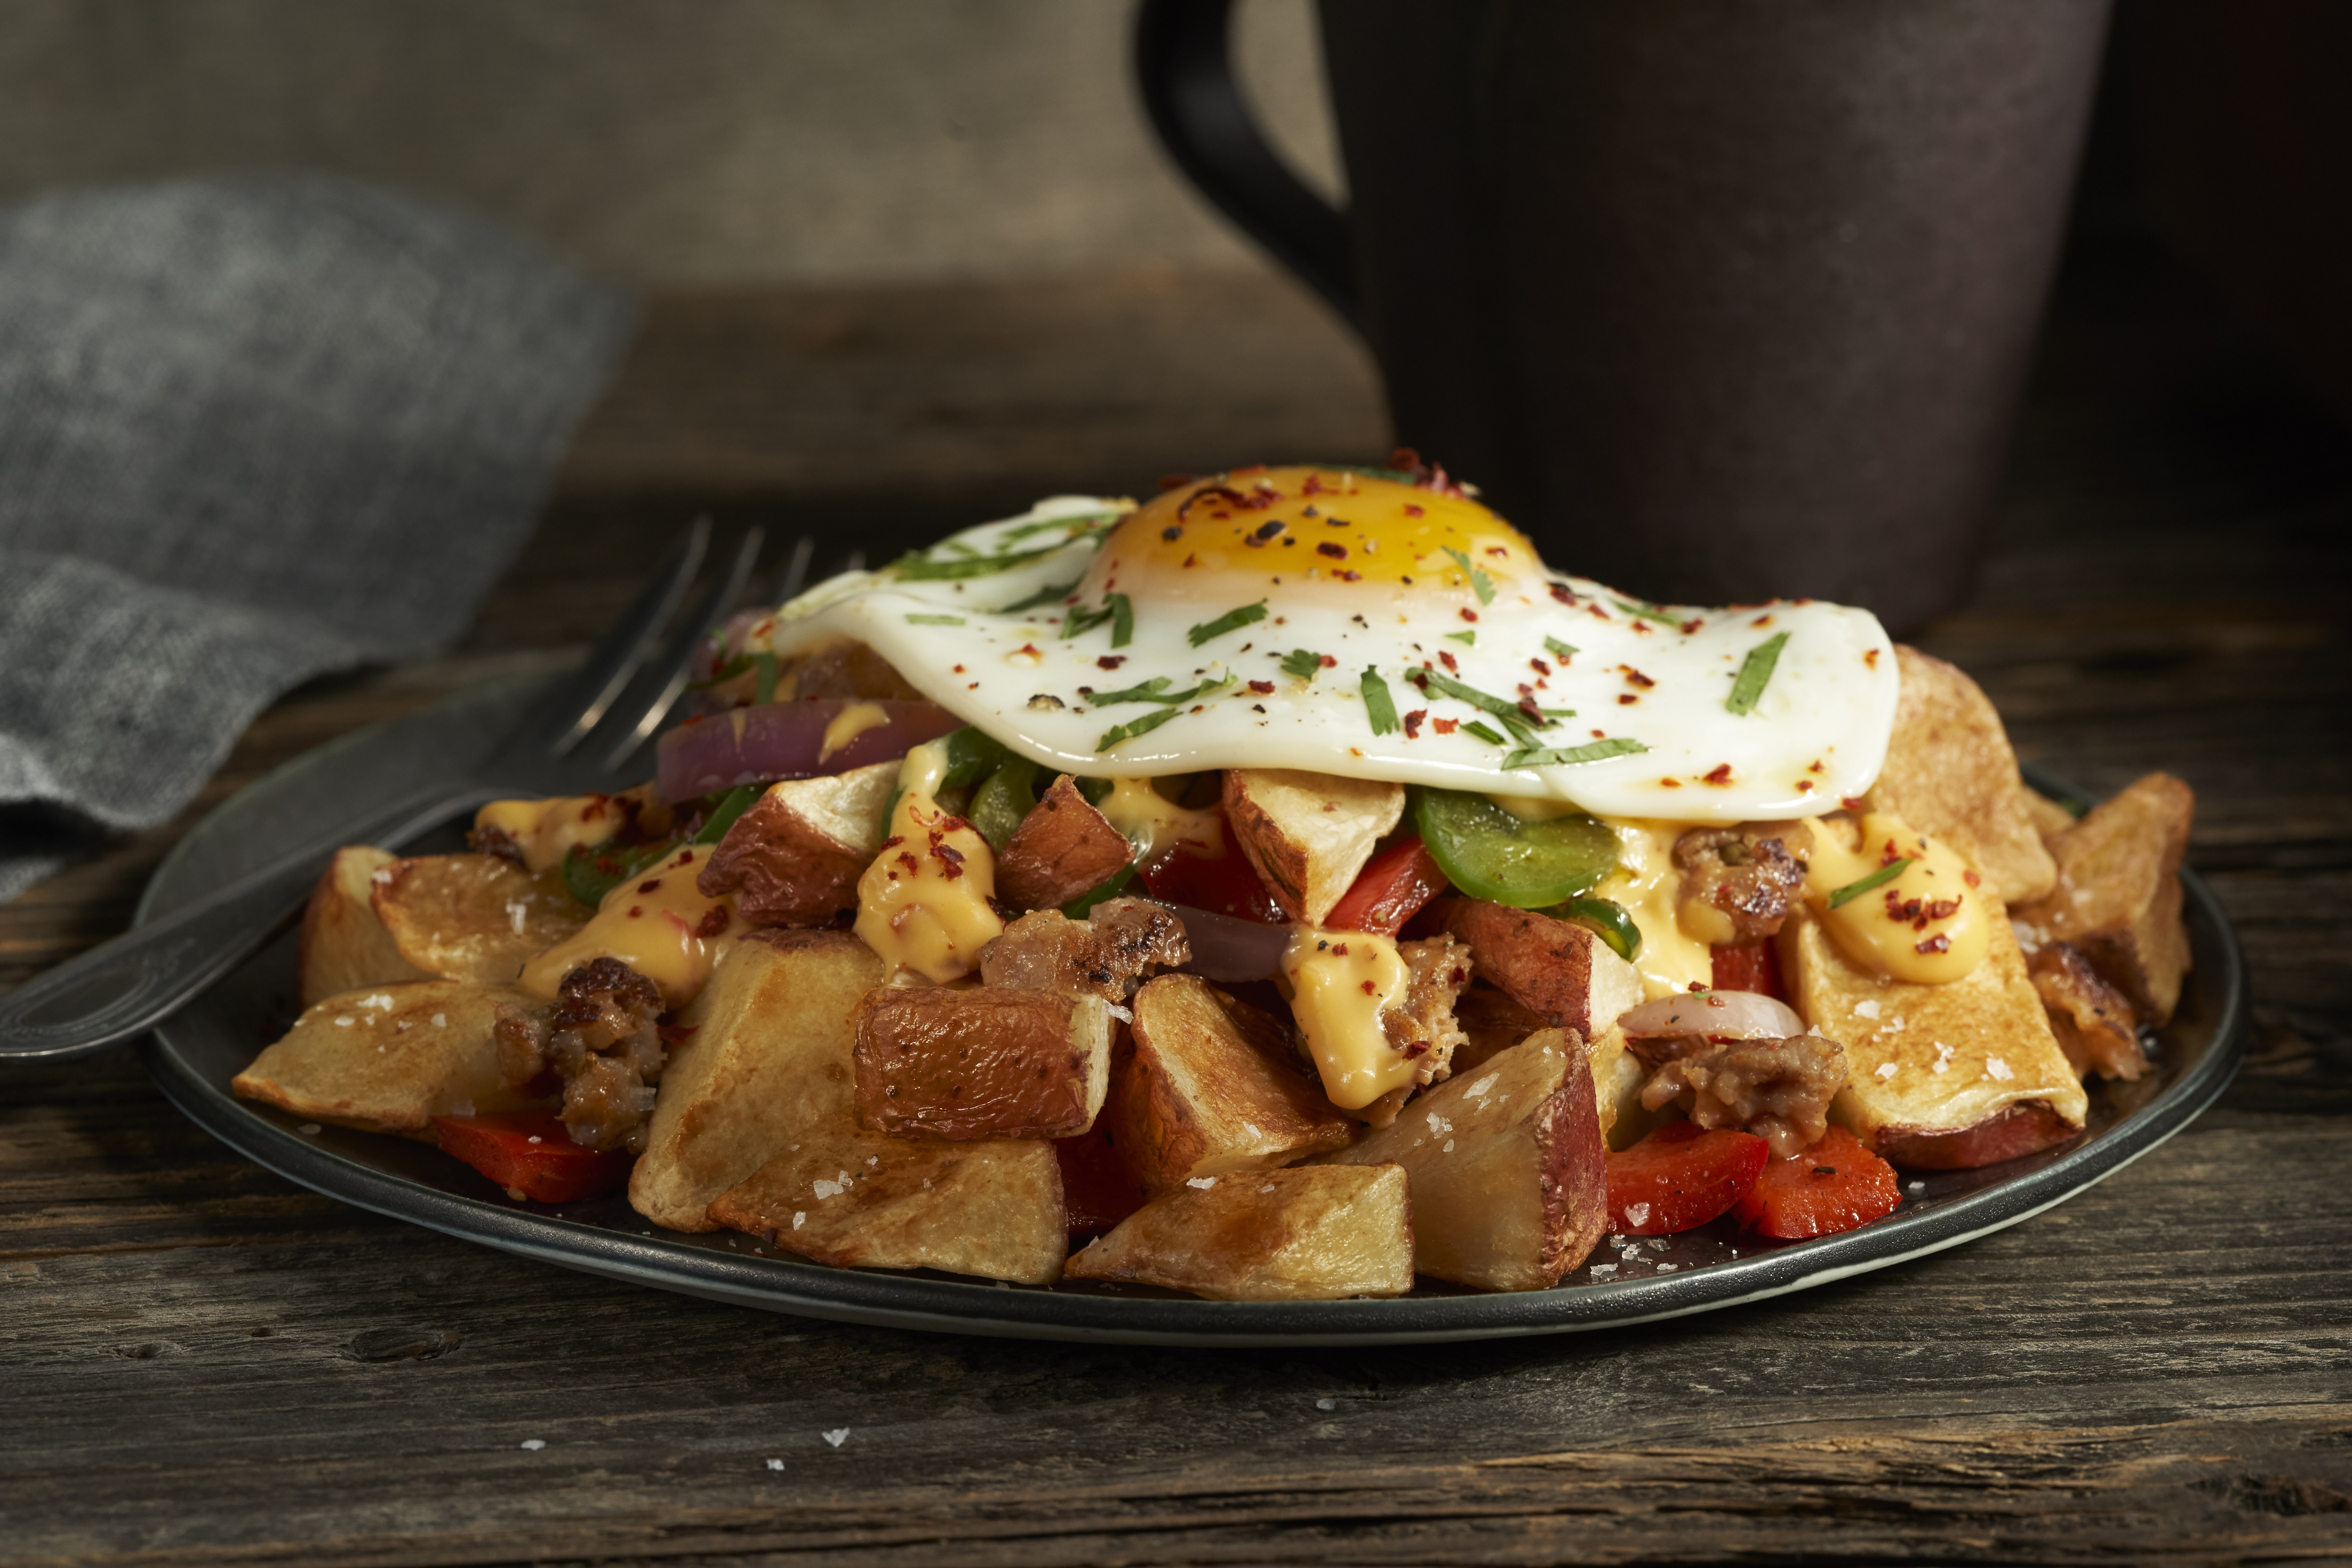 LW586 OVEN ROASTED RED SKIN TRI-CUT DICE PLATED WITH EGG, SAUSAGE AND GRILLED VEGETABLES